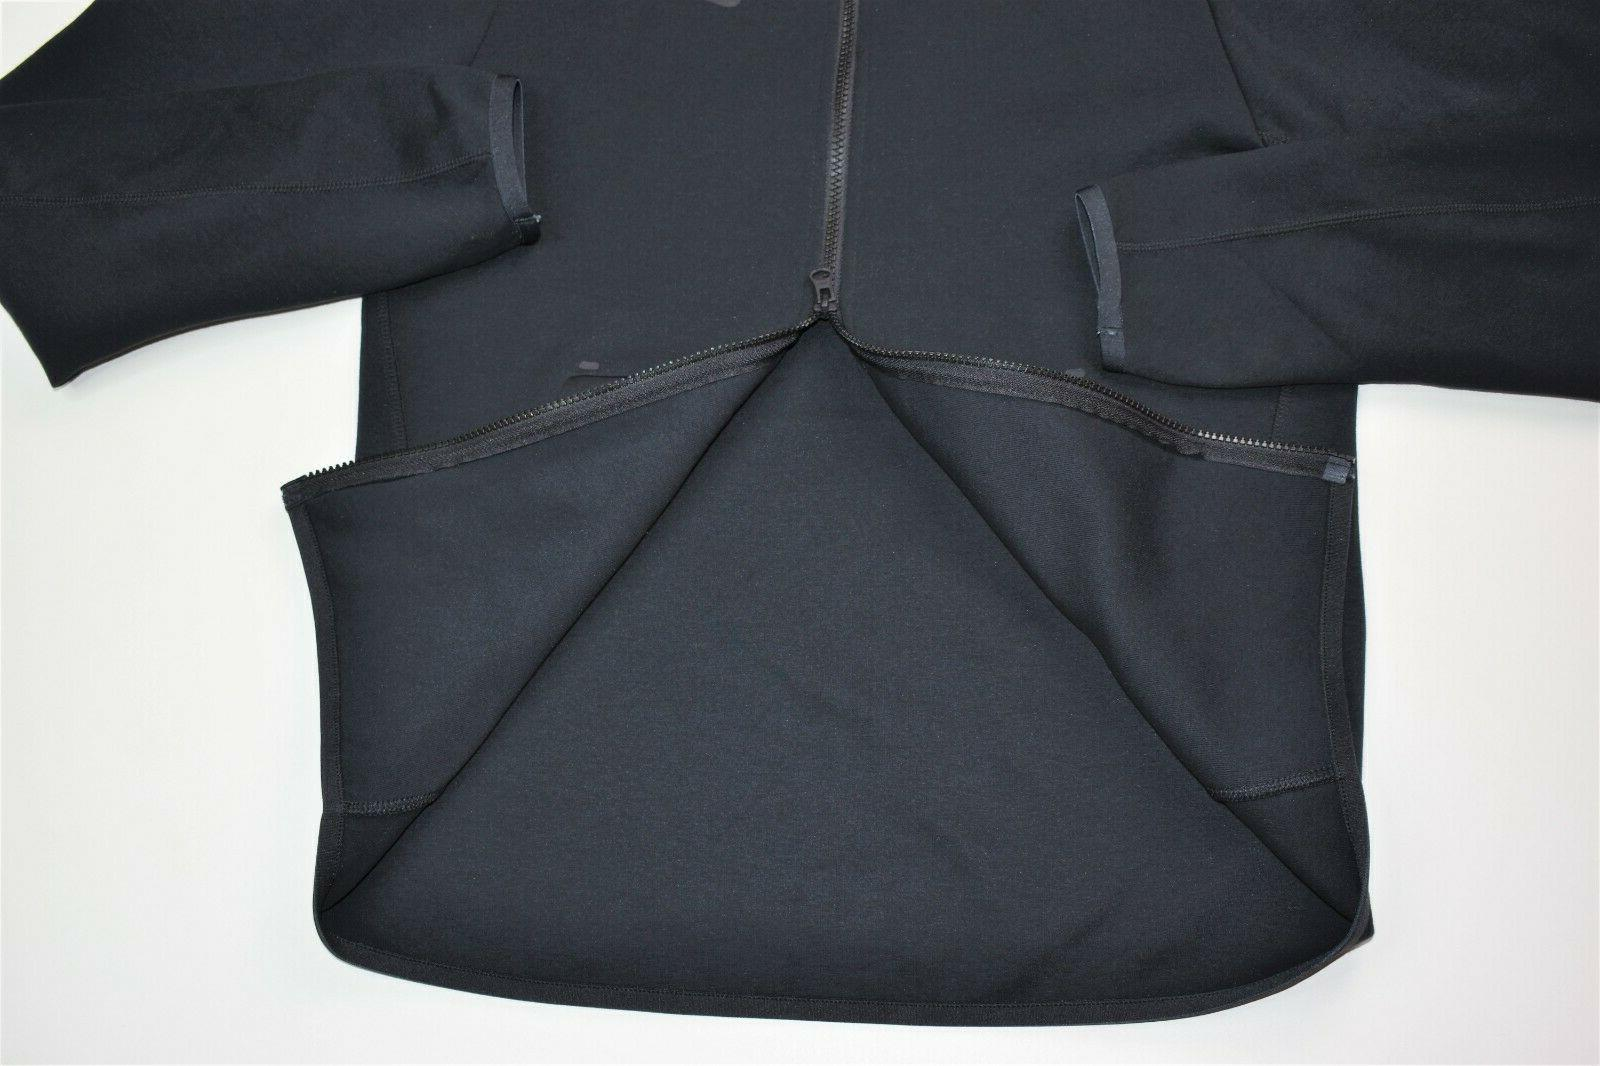 New Tech Hoodie Black 928483-010